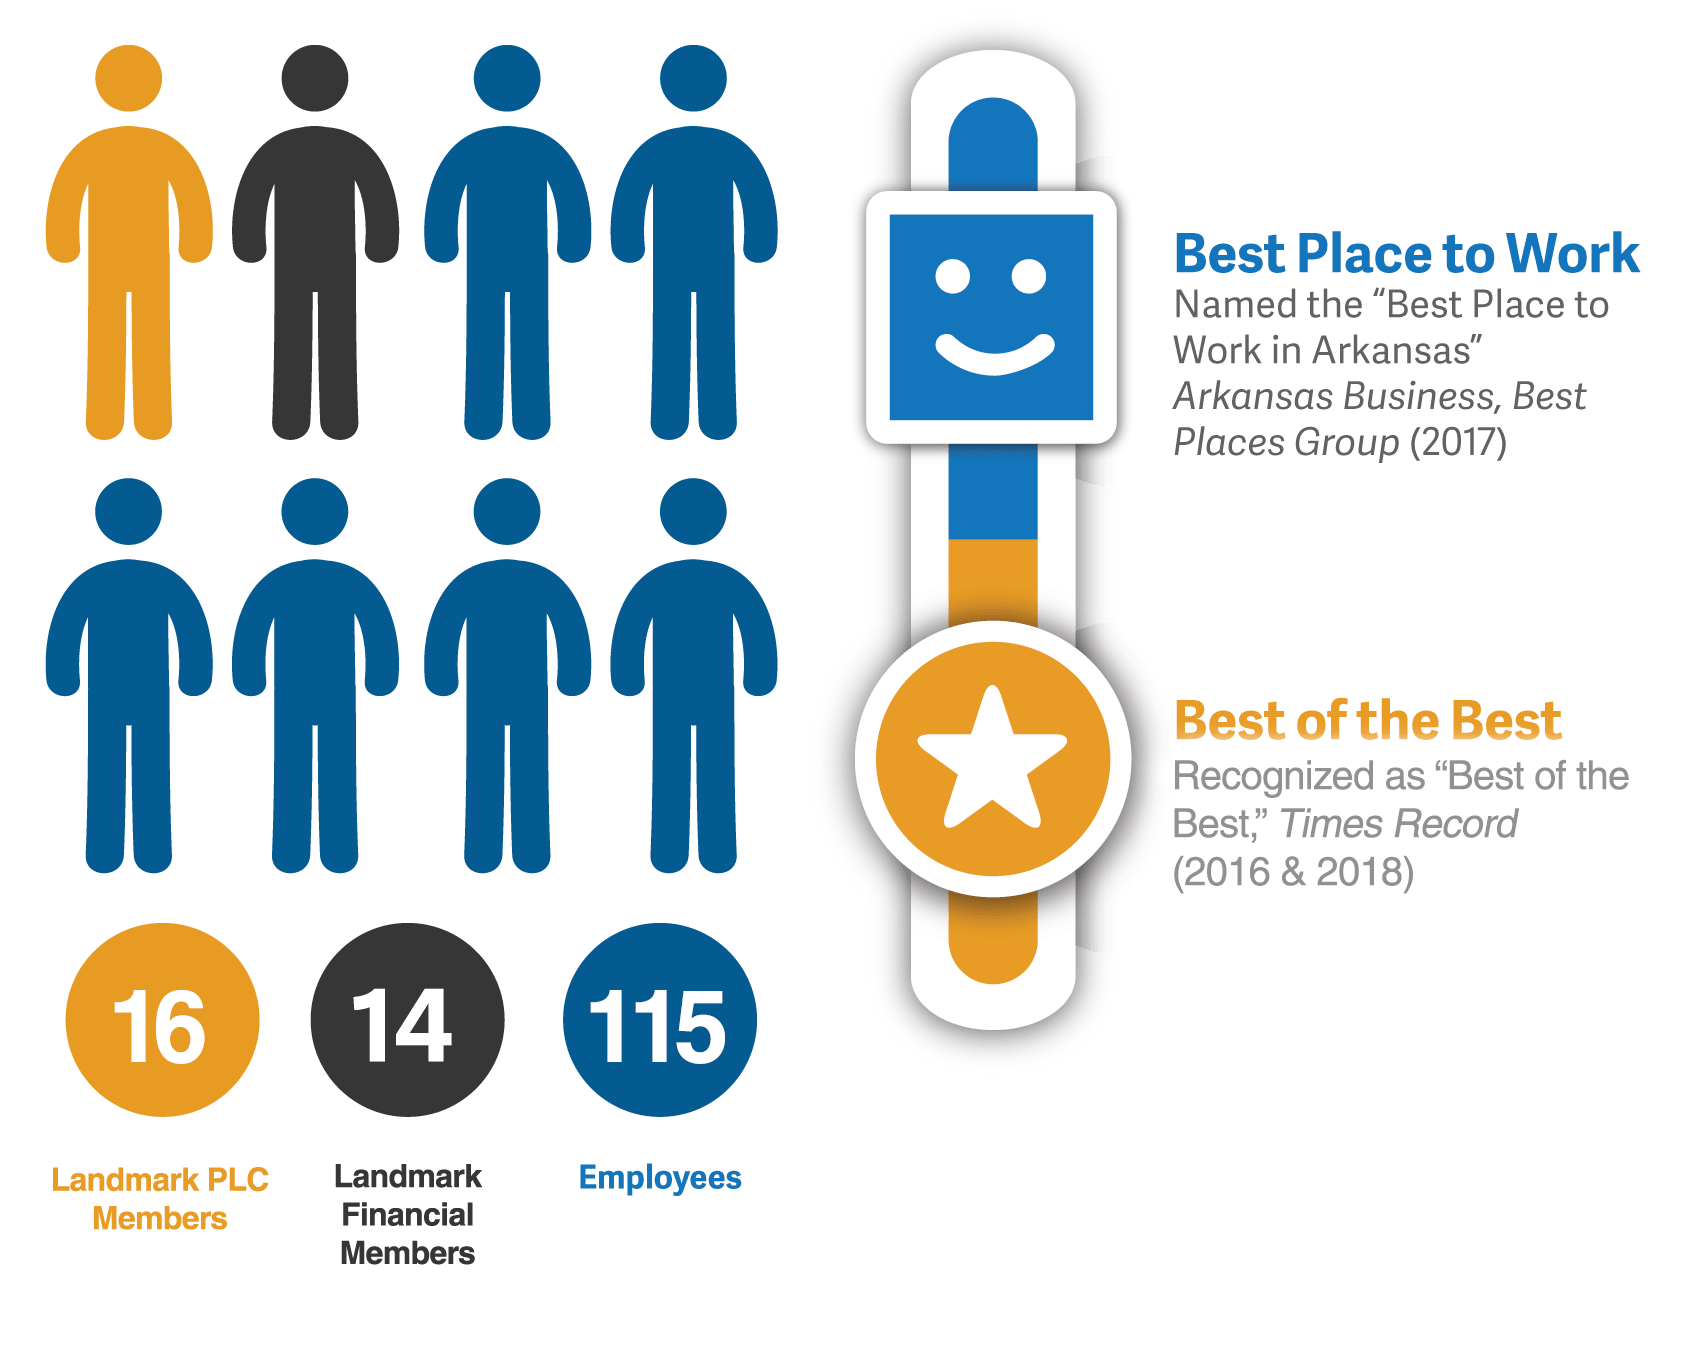 12 Beall Barclay & Company Members, 3 Beall Barclay Wealth Management Members, and 81 total Employees. Voted Best Place to Work in 2017 and voted Best of the Best by Times Record in 2016.